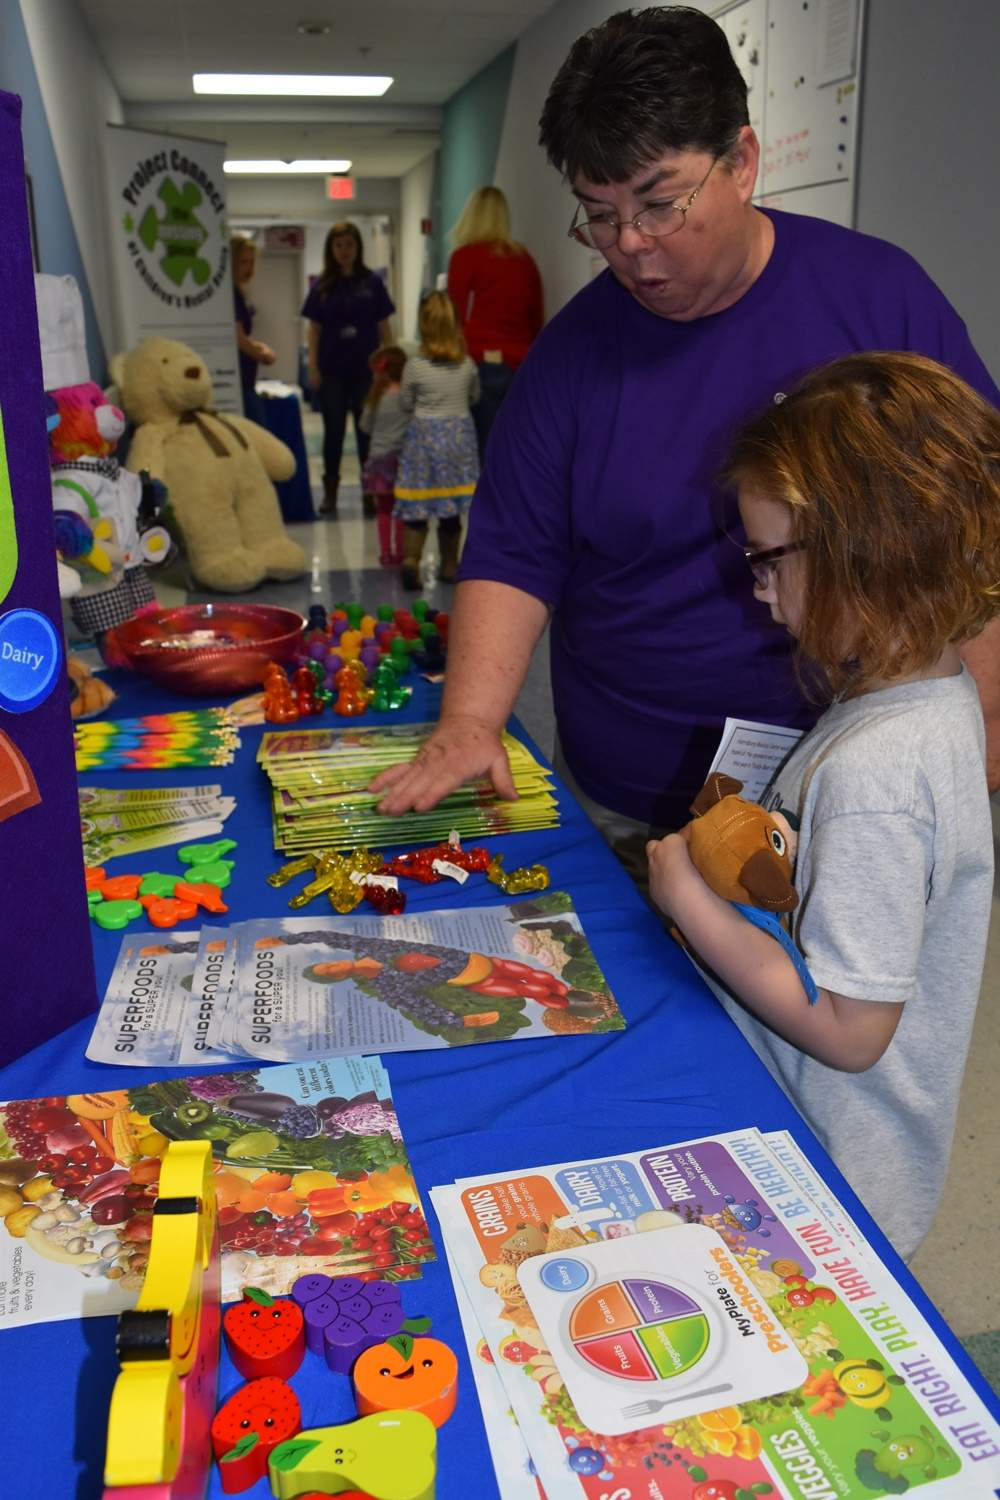 Hallie Hathaway of Marion gets a lesson about safety at a booth at the Teddy Bear Care Fair at Harrisburg Medical Center Saturday.